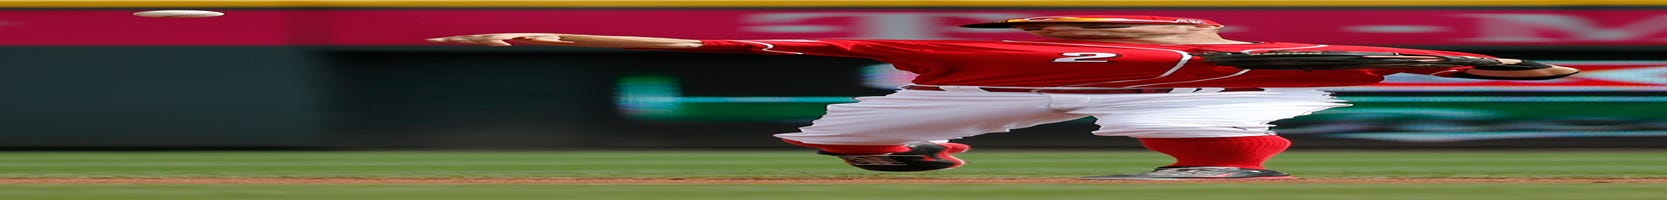 Reds notes: Cozart lonely at shortstop, Mesoraco hits